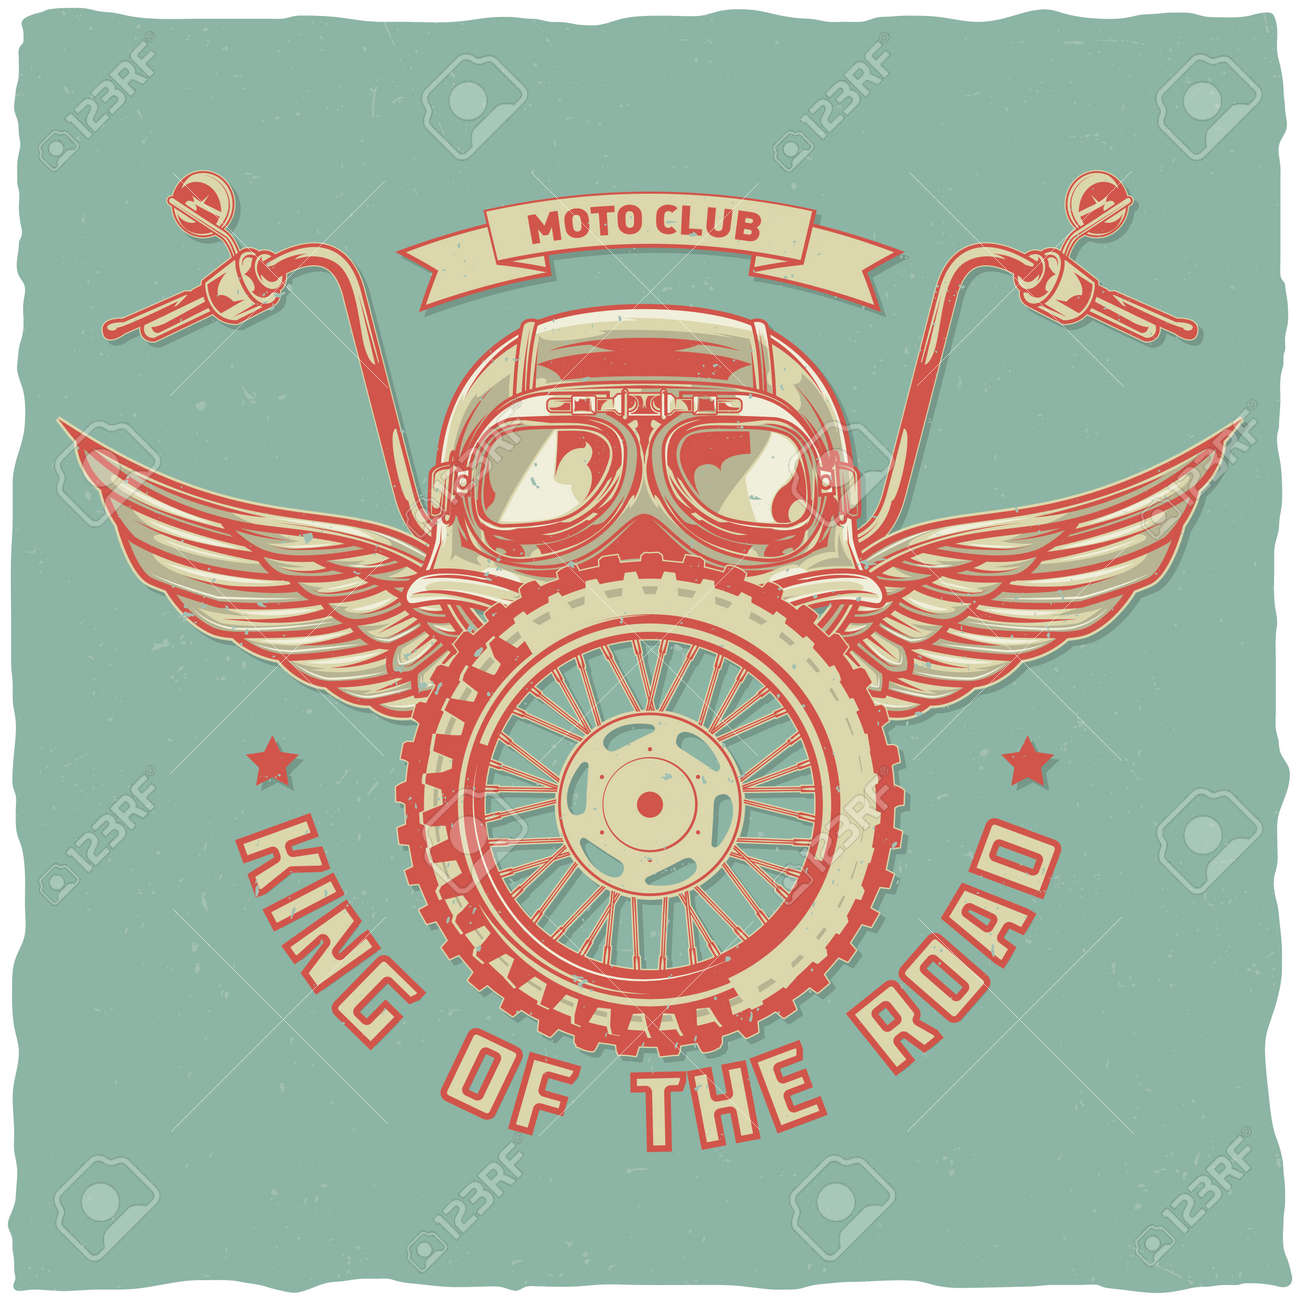 Motorcycle theme t-shirt label design with illustration of helmet, glasses, wheel and wings - 168399210